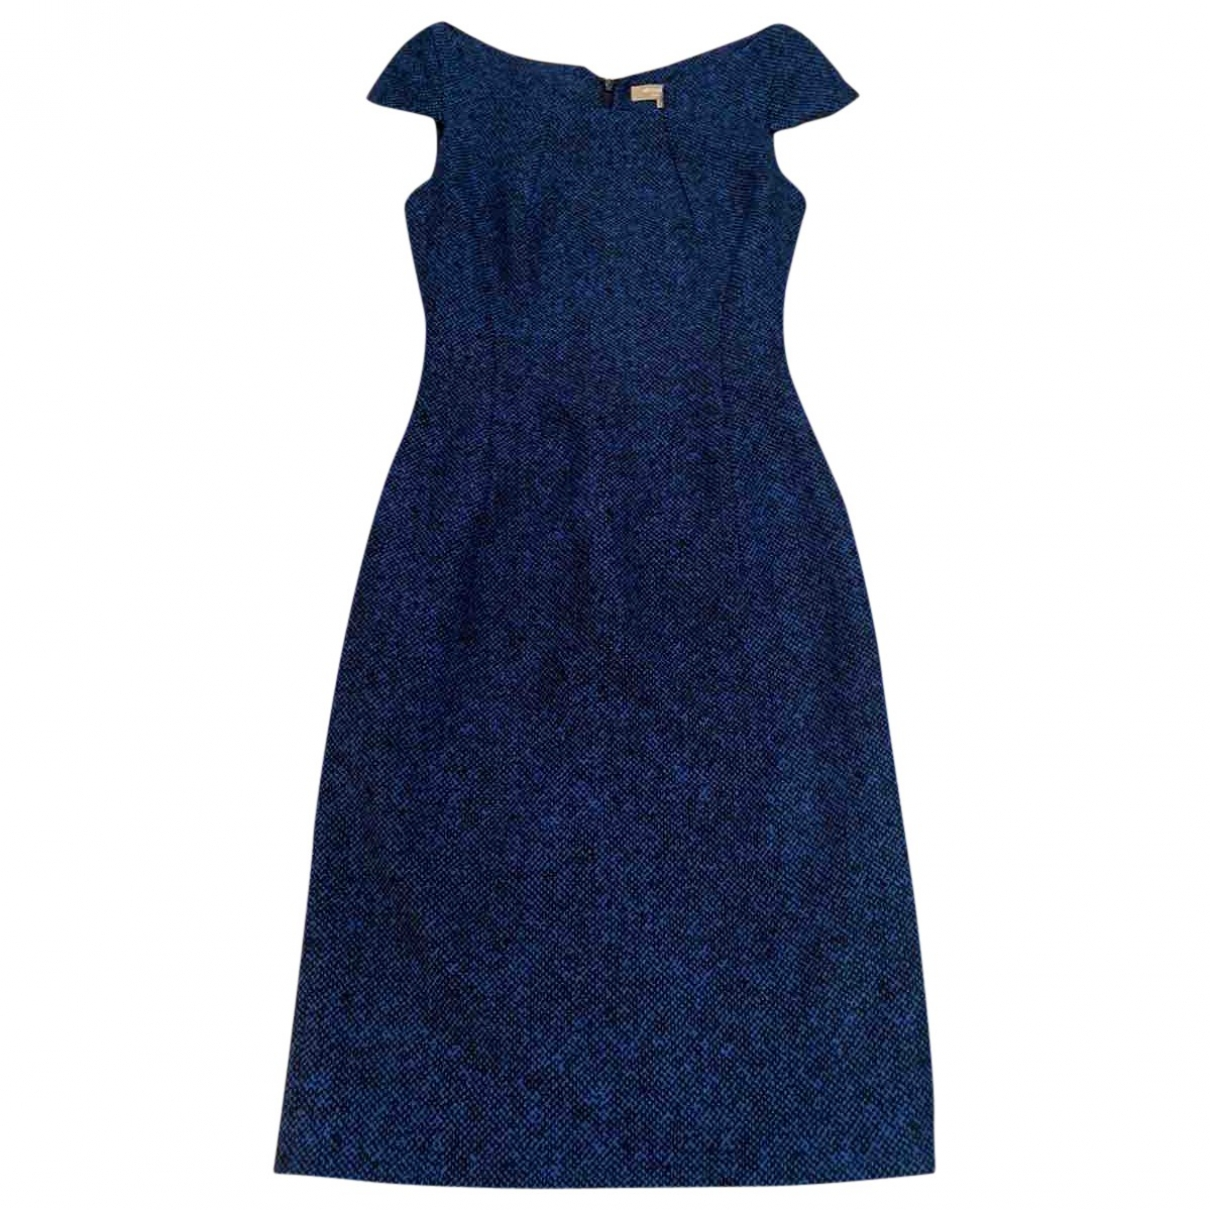 Michael Kors \N Blue Wool dress for Women 4 US